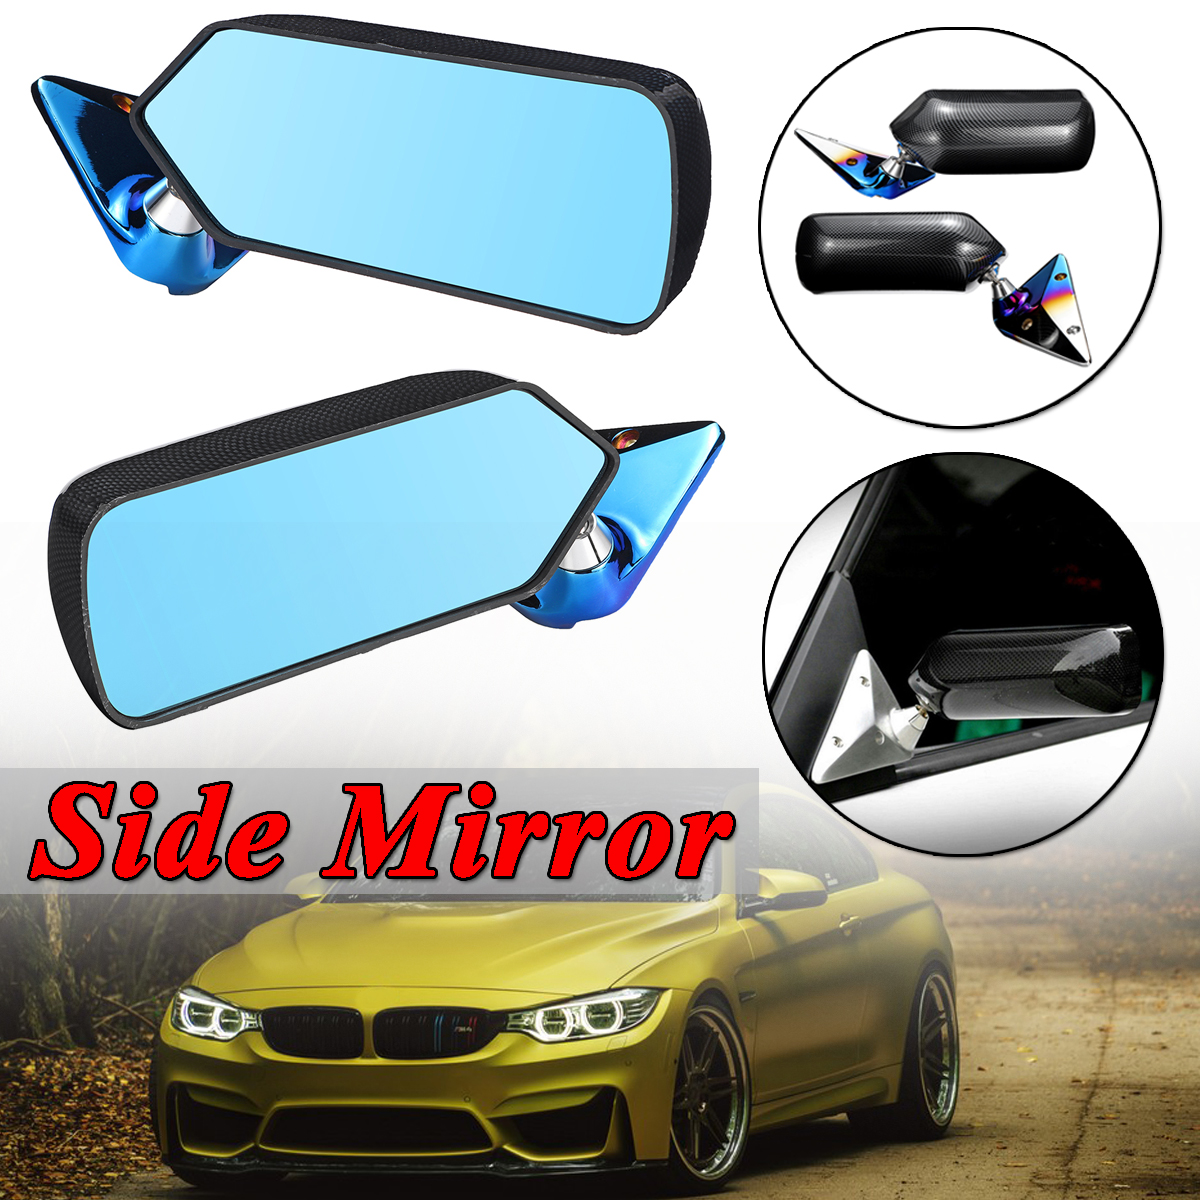 A Pair Blue Universal Car Side Mirror Rearview Wing Retro Mirror Metal Bracket Side Mirror Set F1 Style Carbon Fiber Look